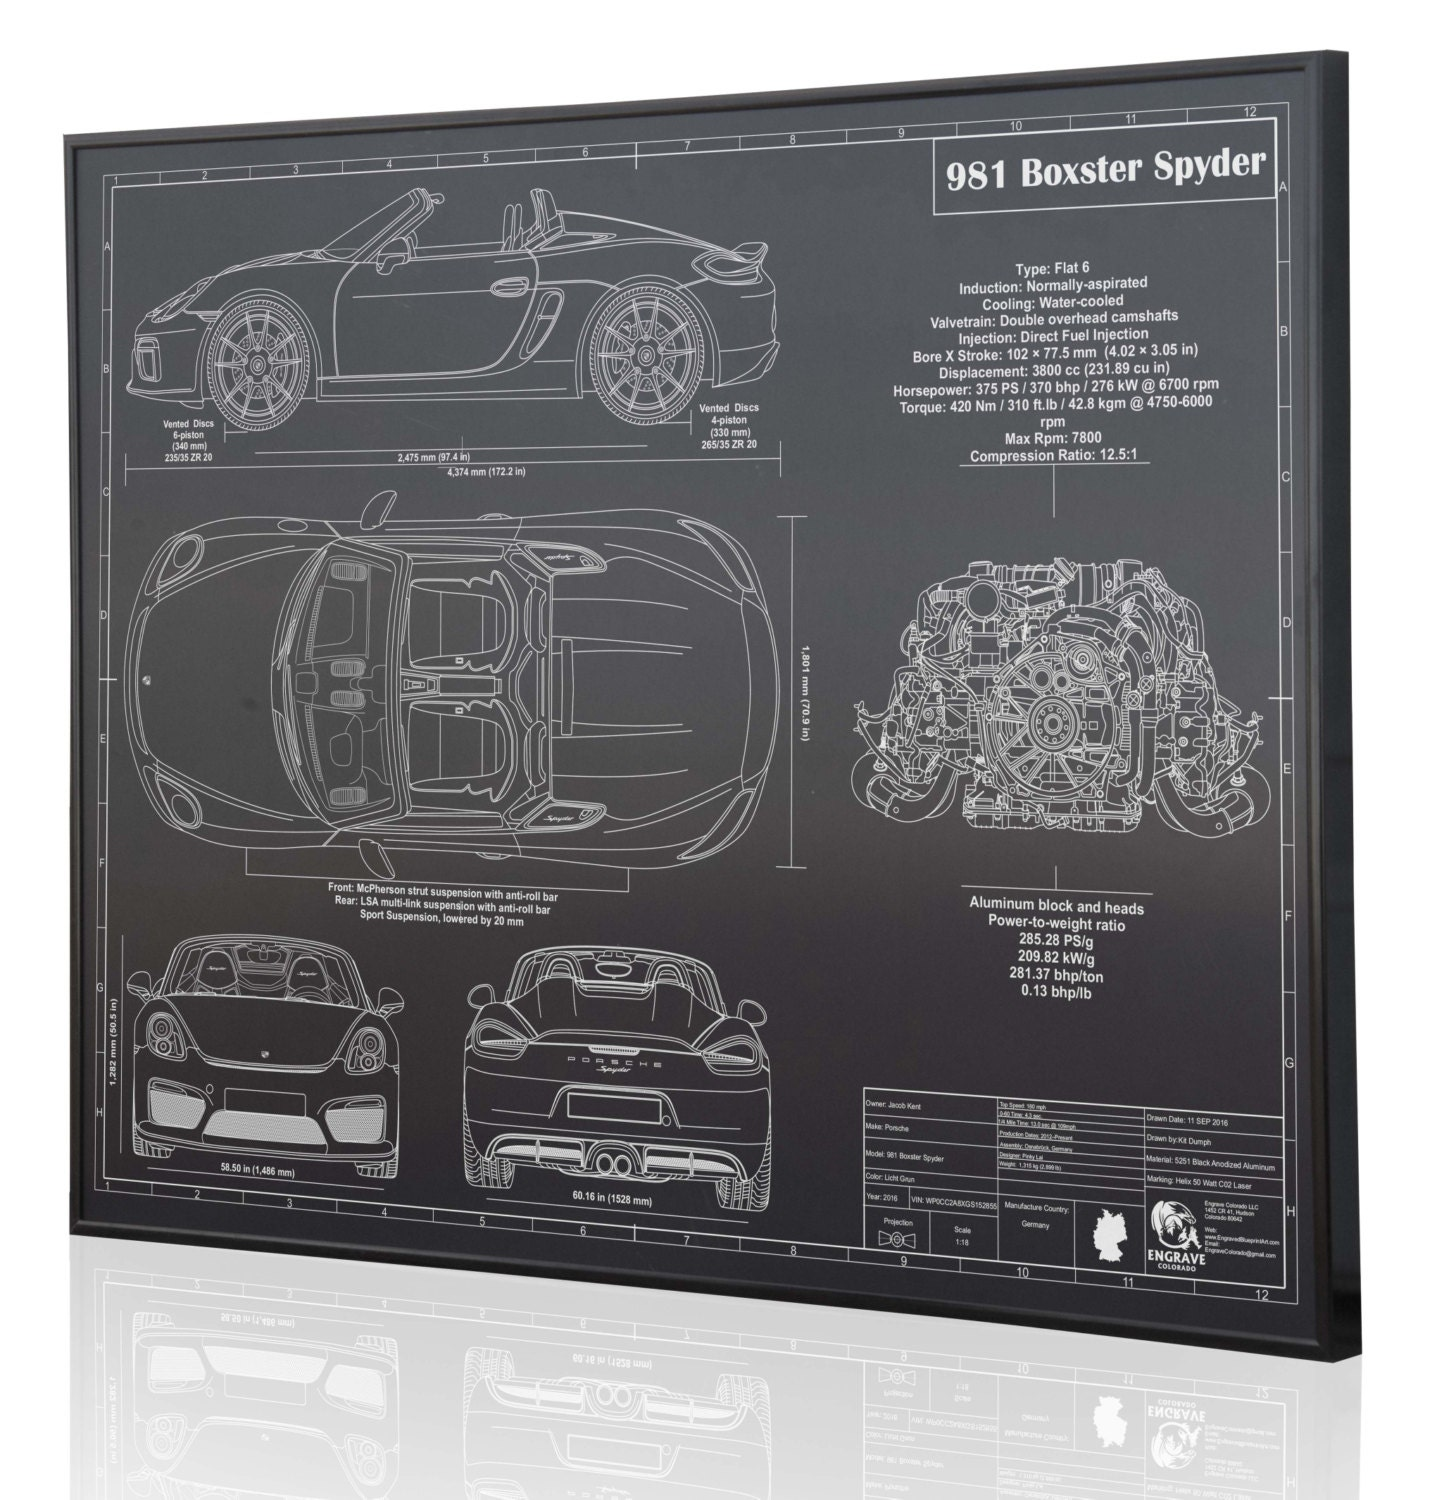 Porsche Boxster Spyder 981 Laser Engraved Wall Art Poster Etsy Engine Diagram On Metal Acrylic Or Wood Custom Car Sign